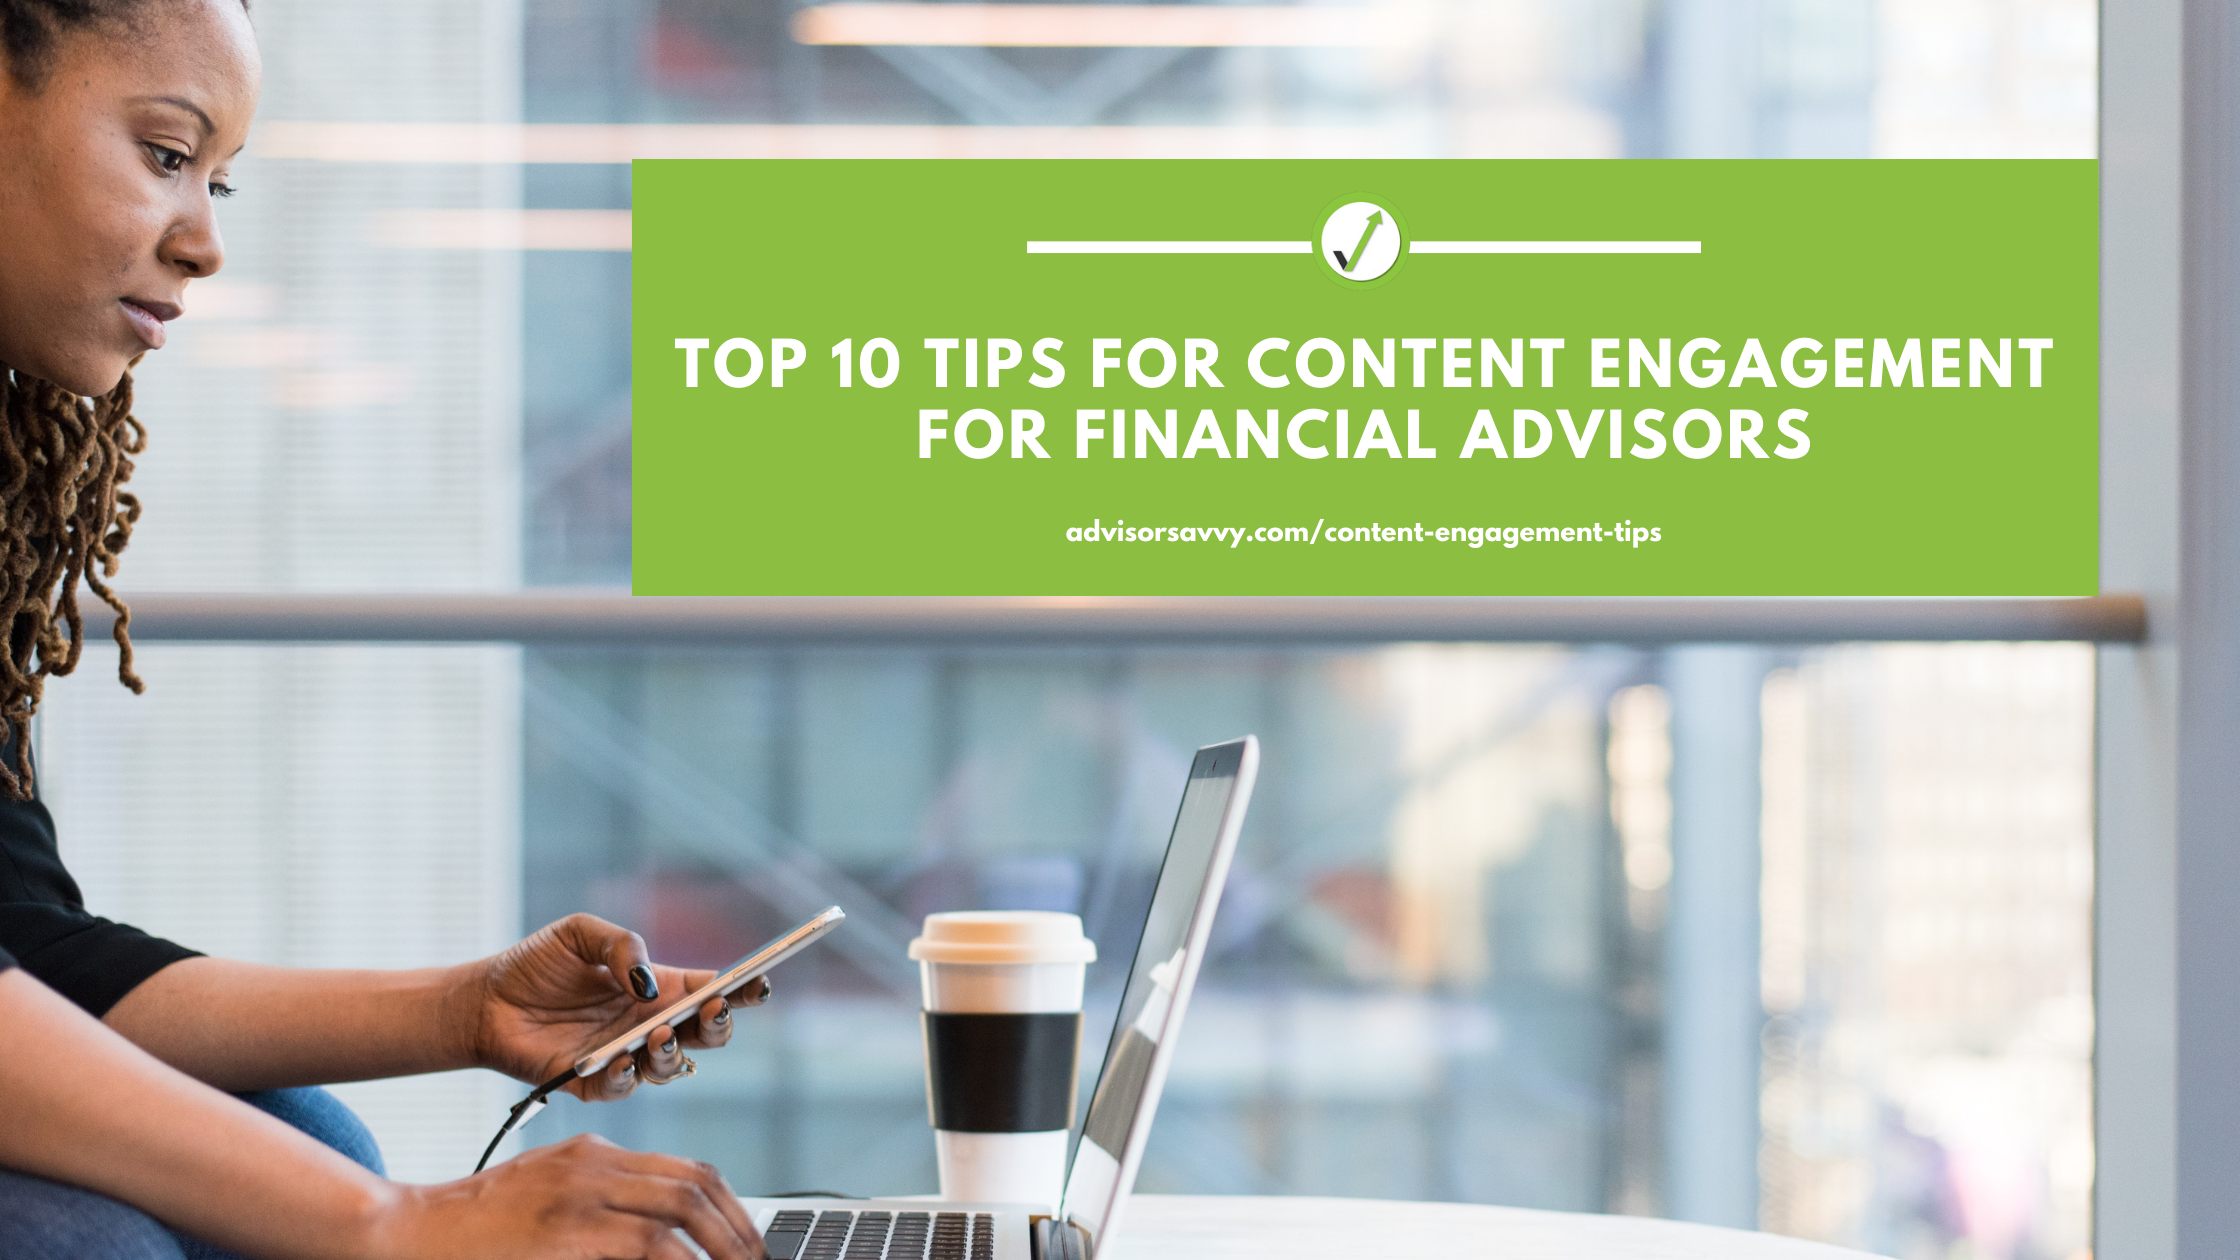 Top 10 Tips for Content Engagement for Financial Advisors